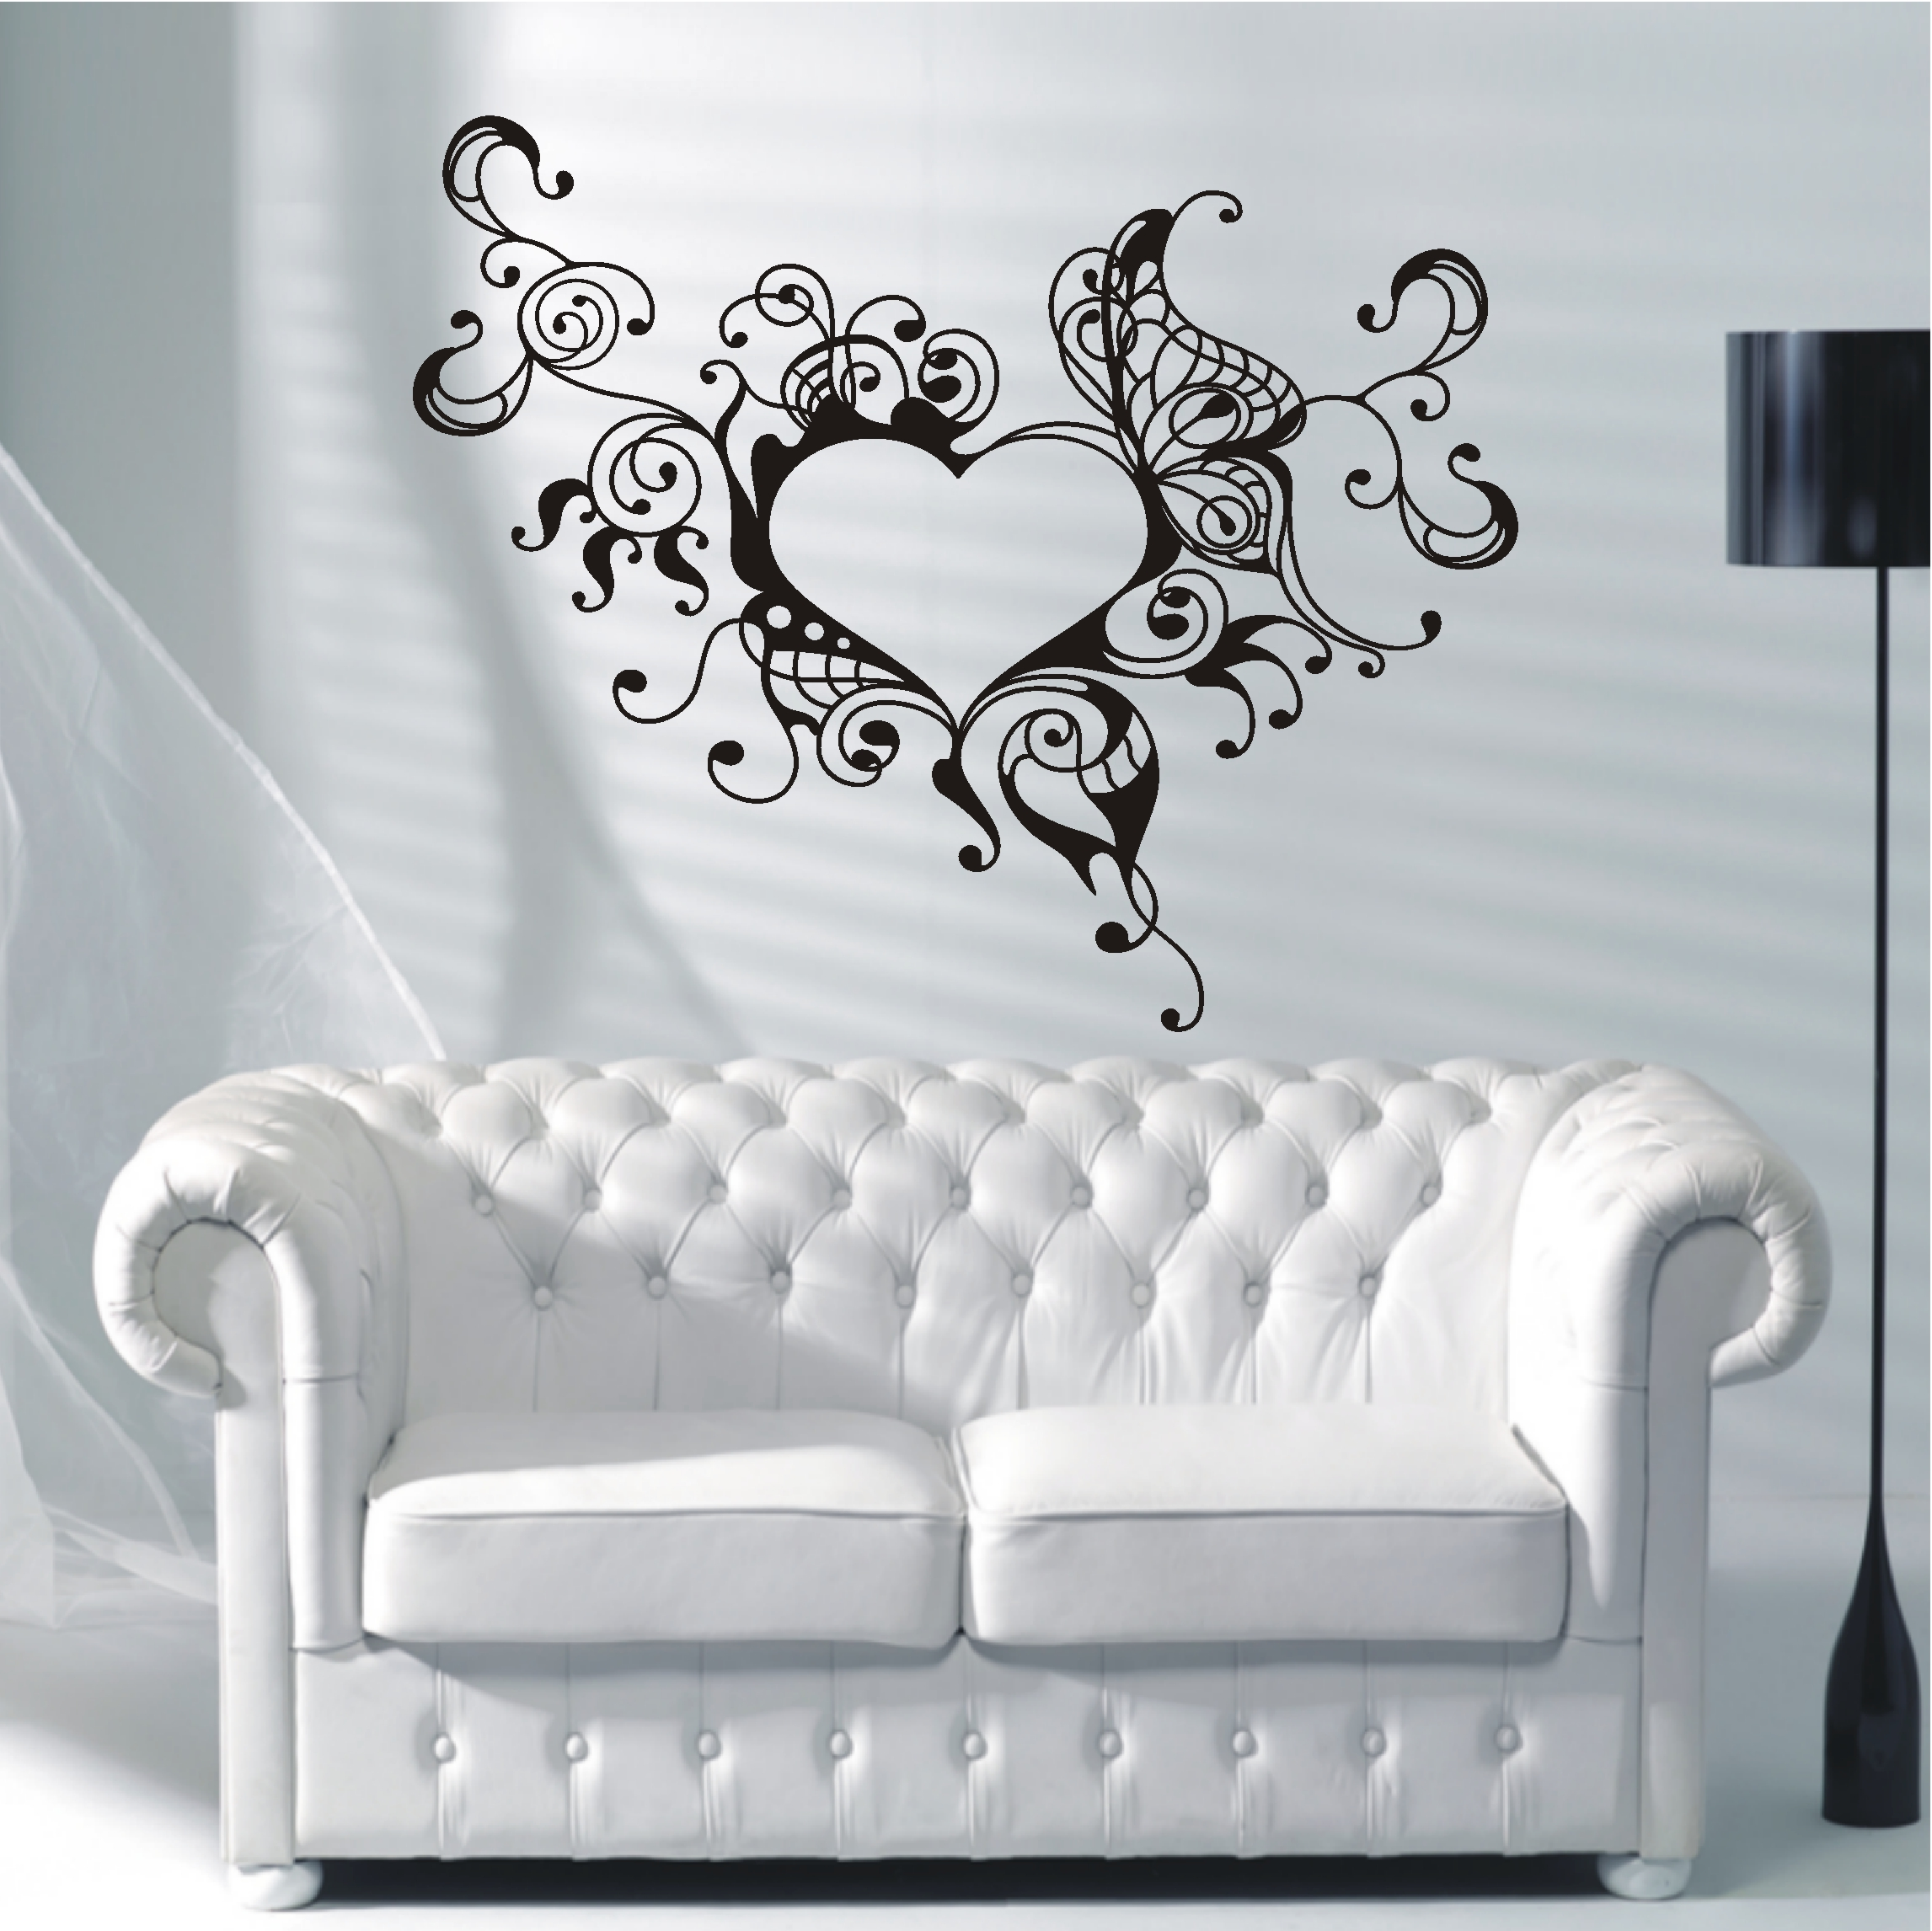 wandtattoo herz mit fl geln reuniecollegenoetsele. Black Bedroom Furniture Sets. Home Design Ideas